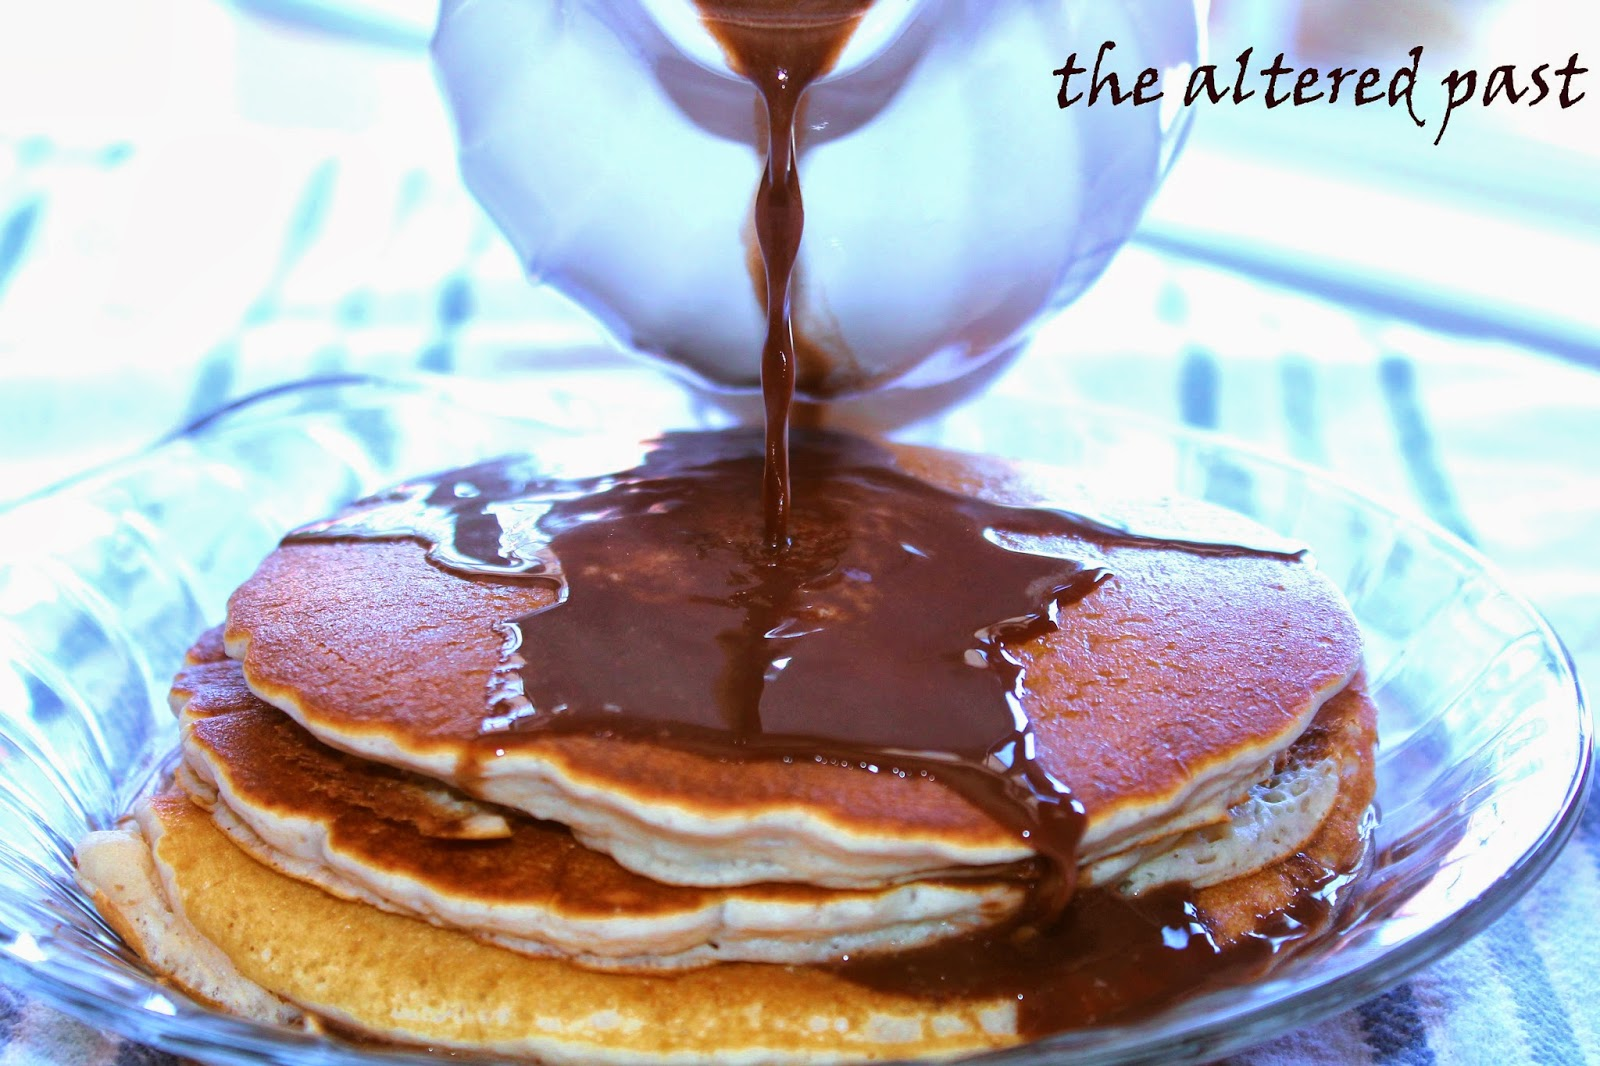 national pancake day, chocolate syrup recipe